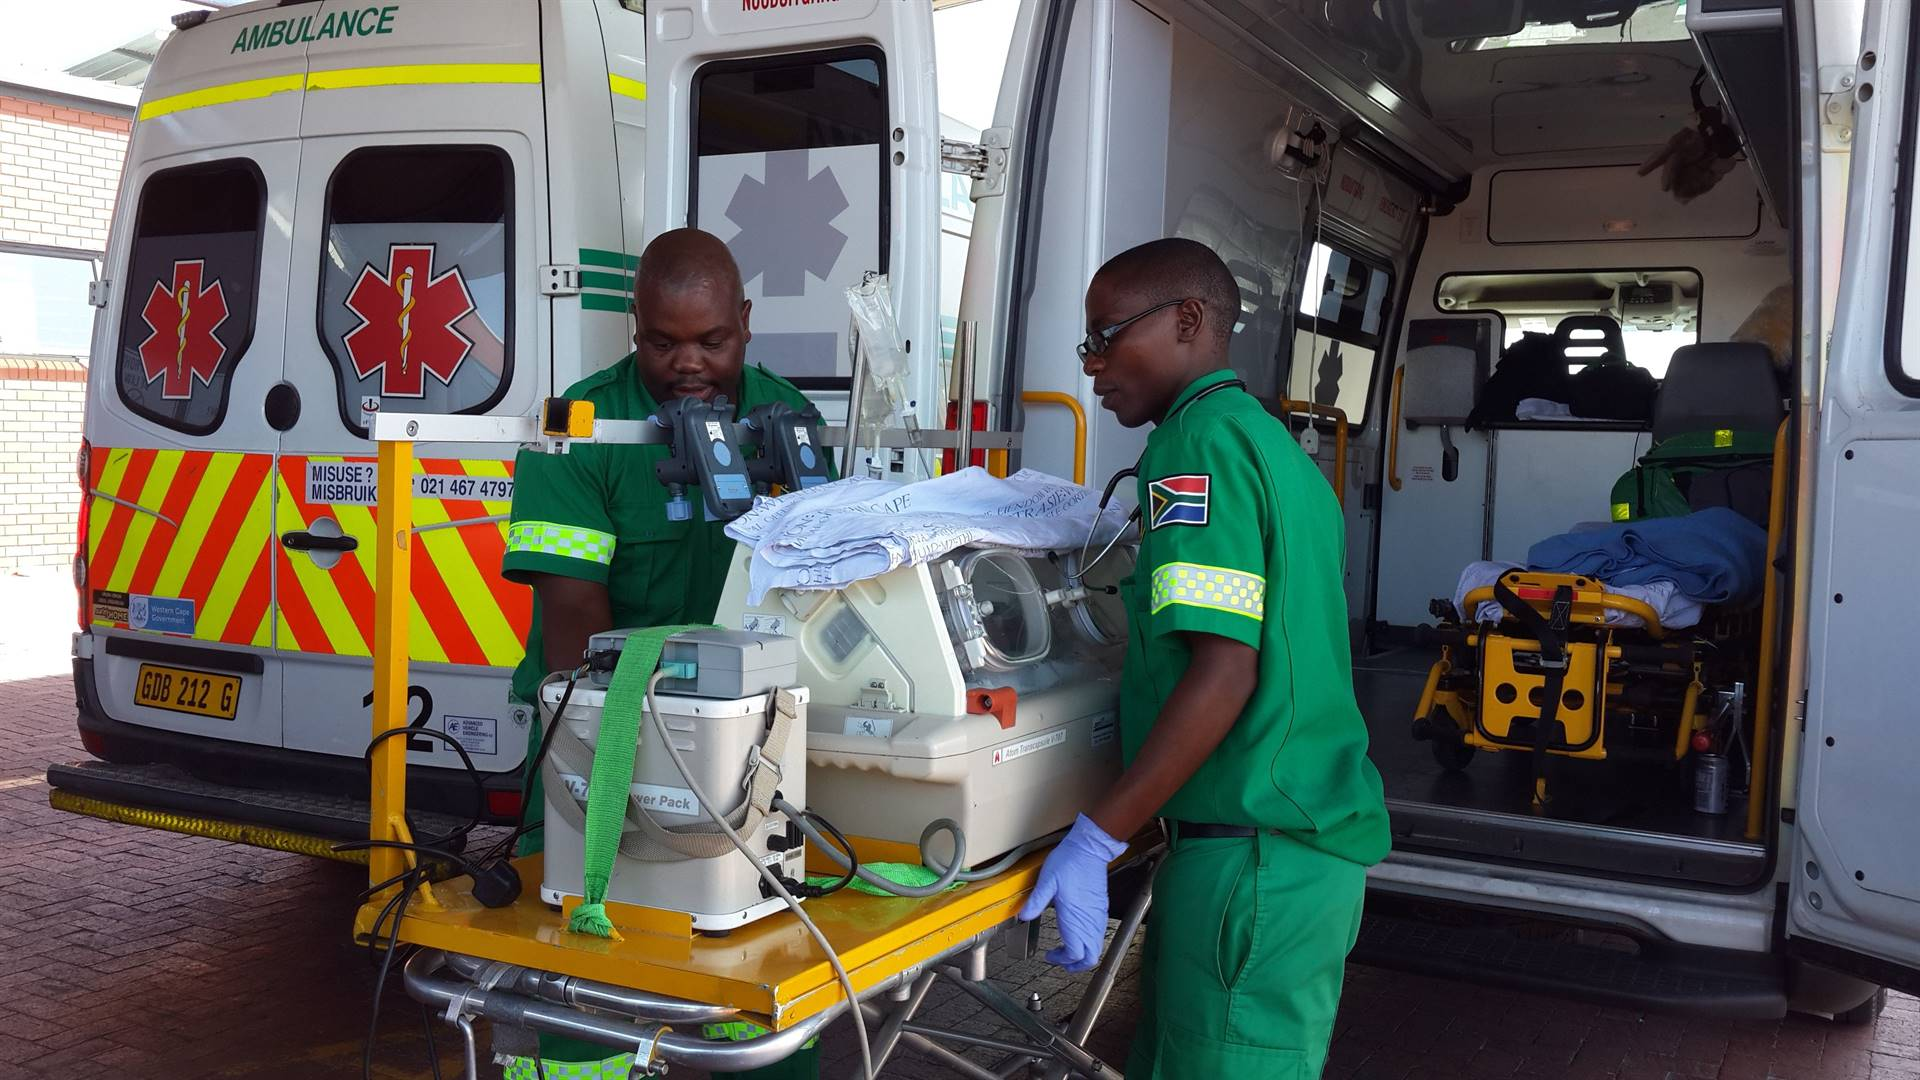 In-depth: On the streets with paramedics amid Covid-19 and high crime rates | Citypress - News24